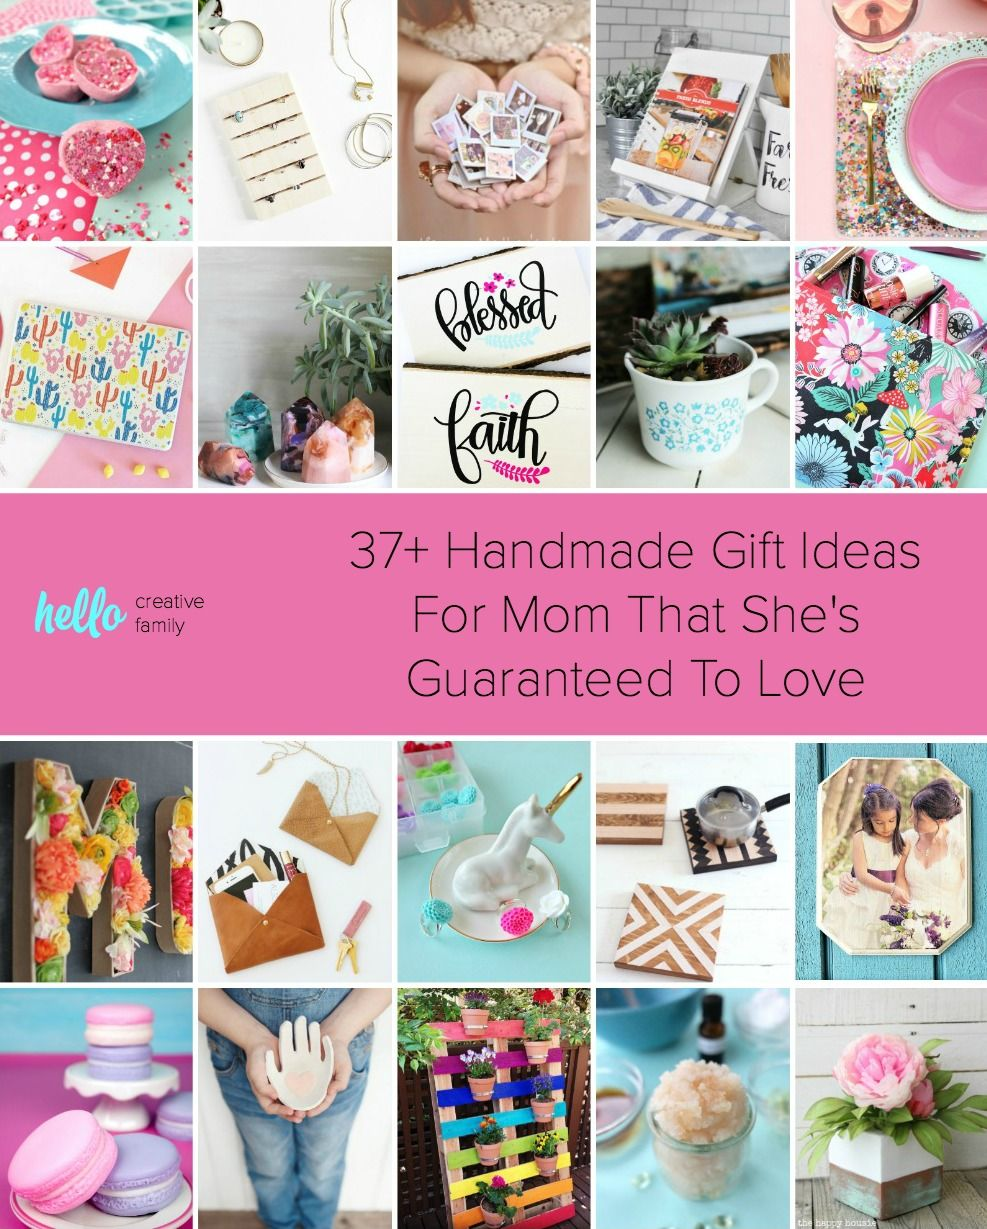 37+ Handmade Gift Ideas For Mom That She's Guaranteed To